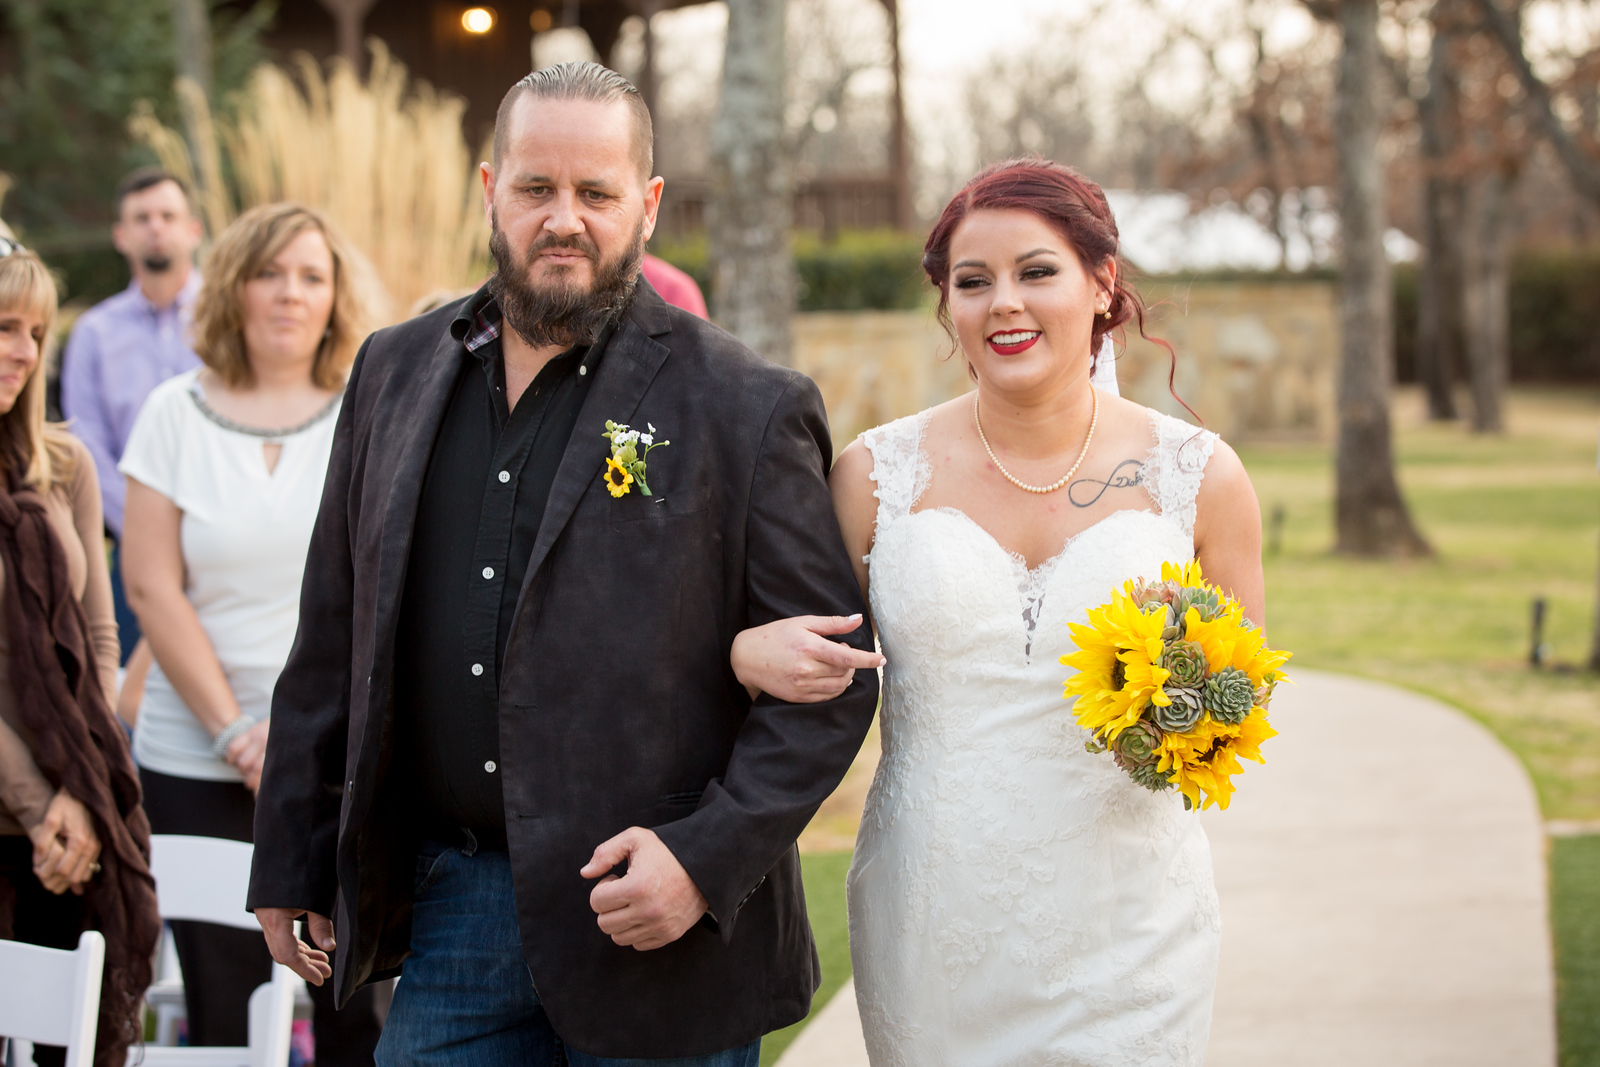 a bride being walked down the aisle of her wedding ceremony holding a yellow bouquet